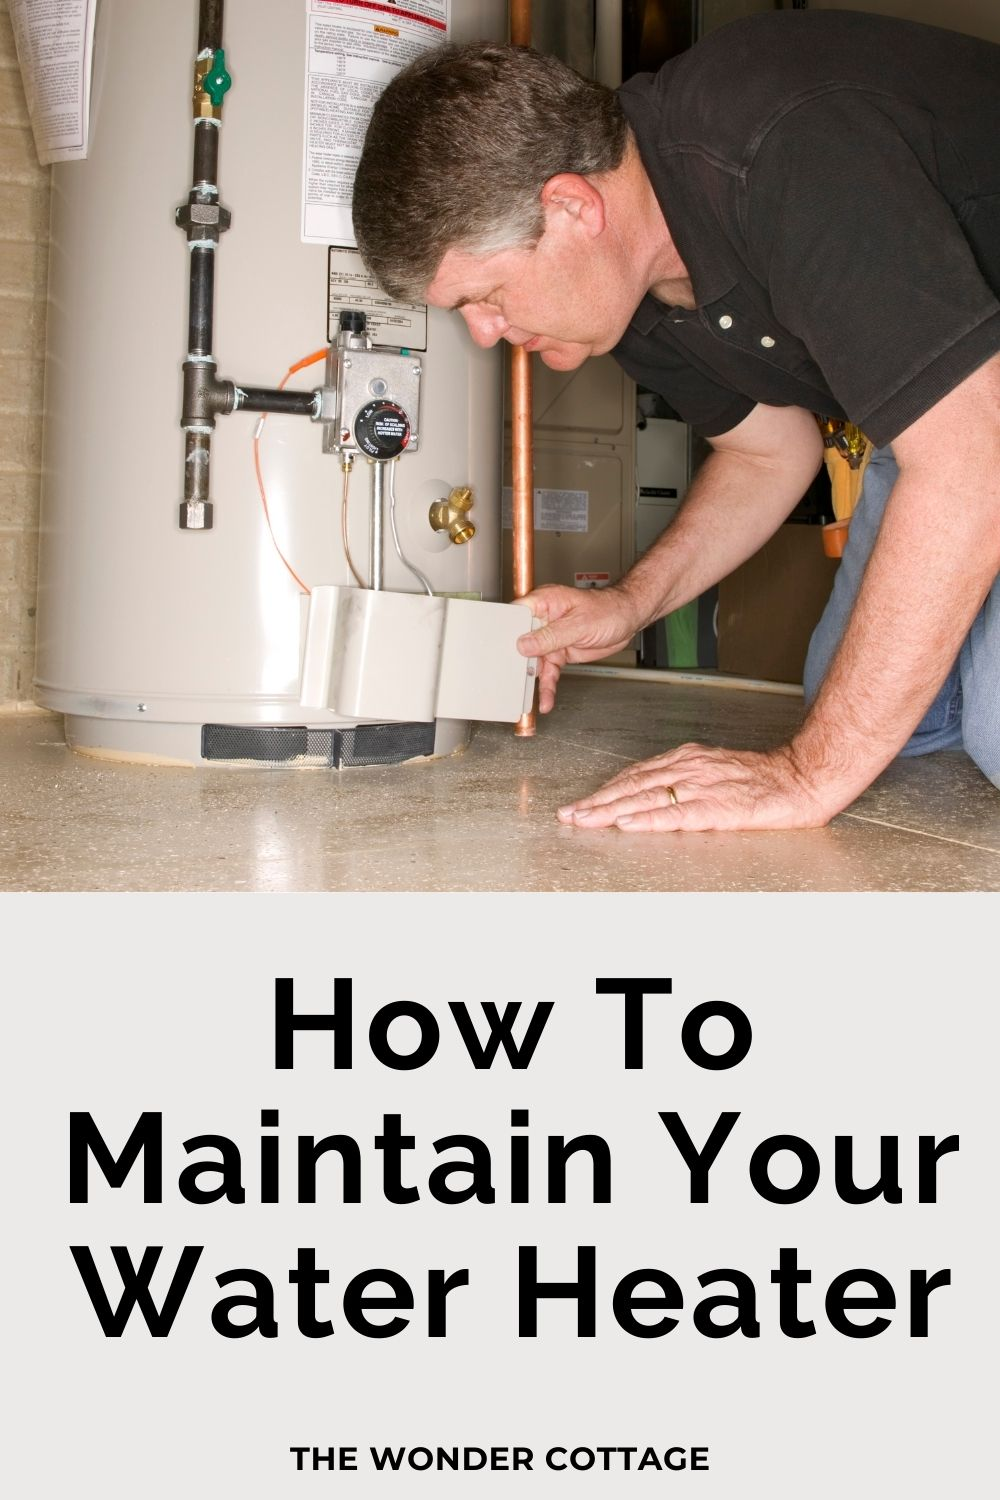 How to maintain your water heater